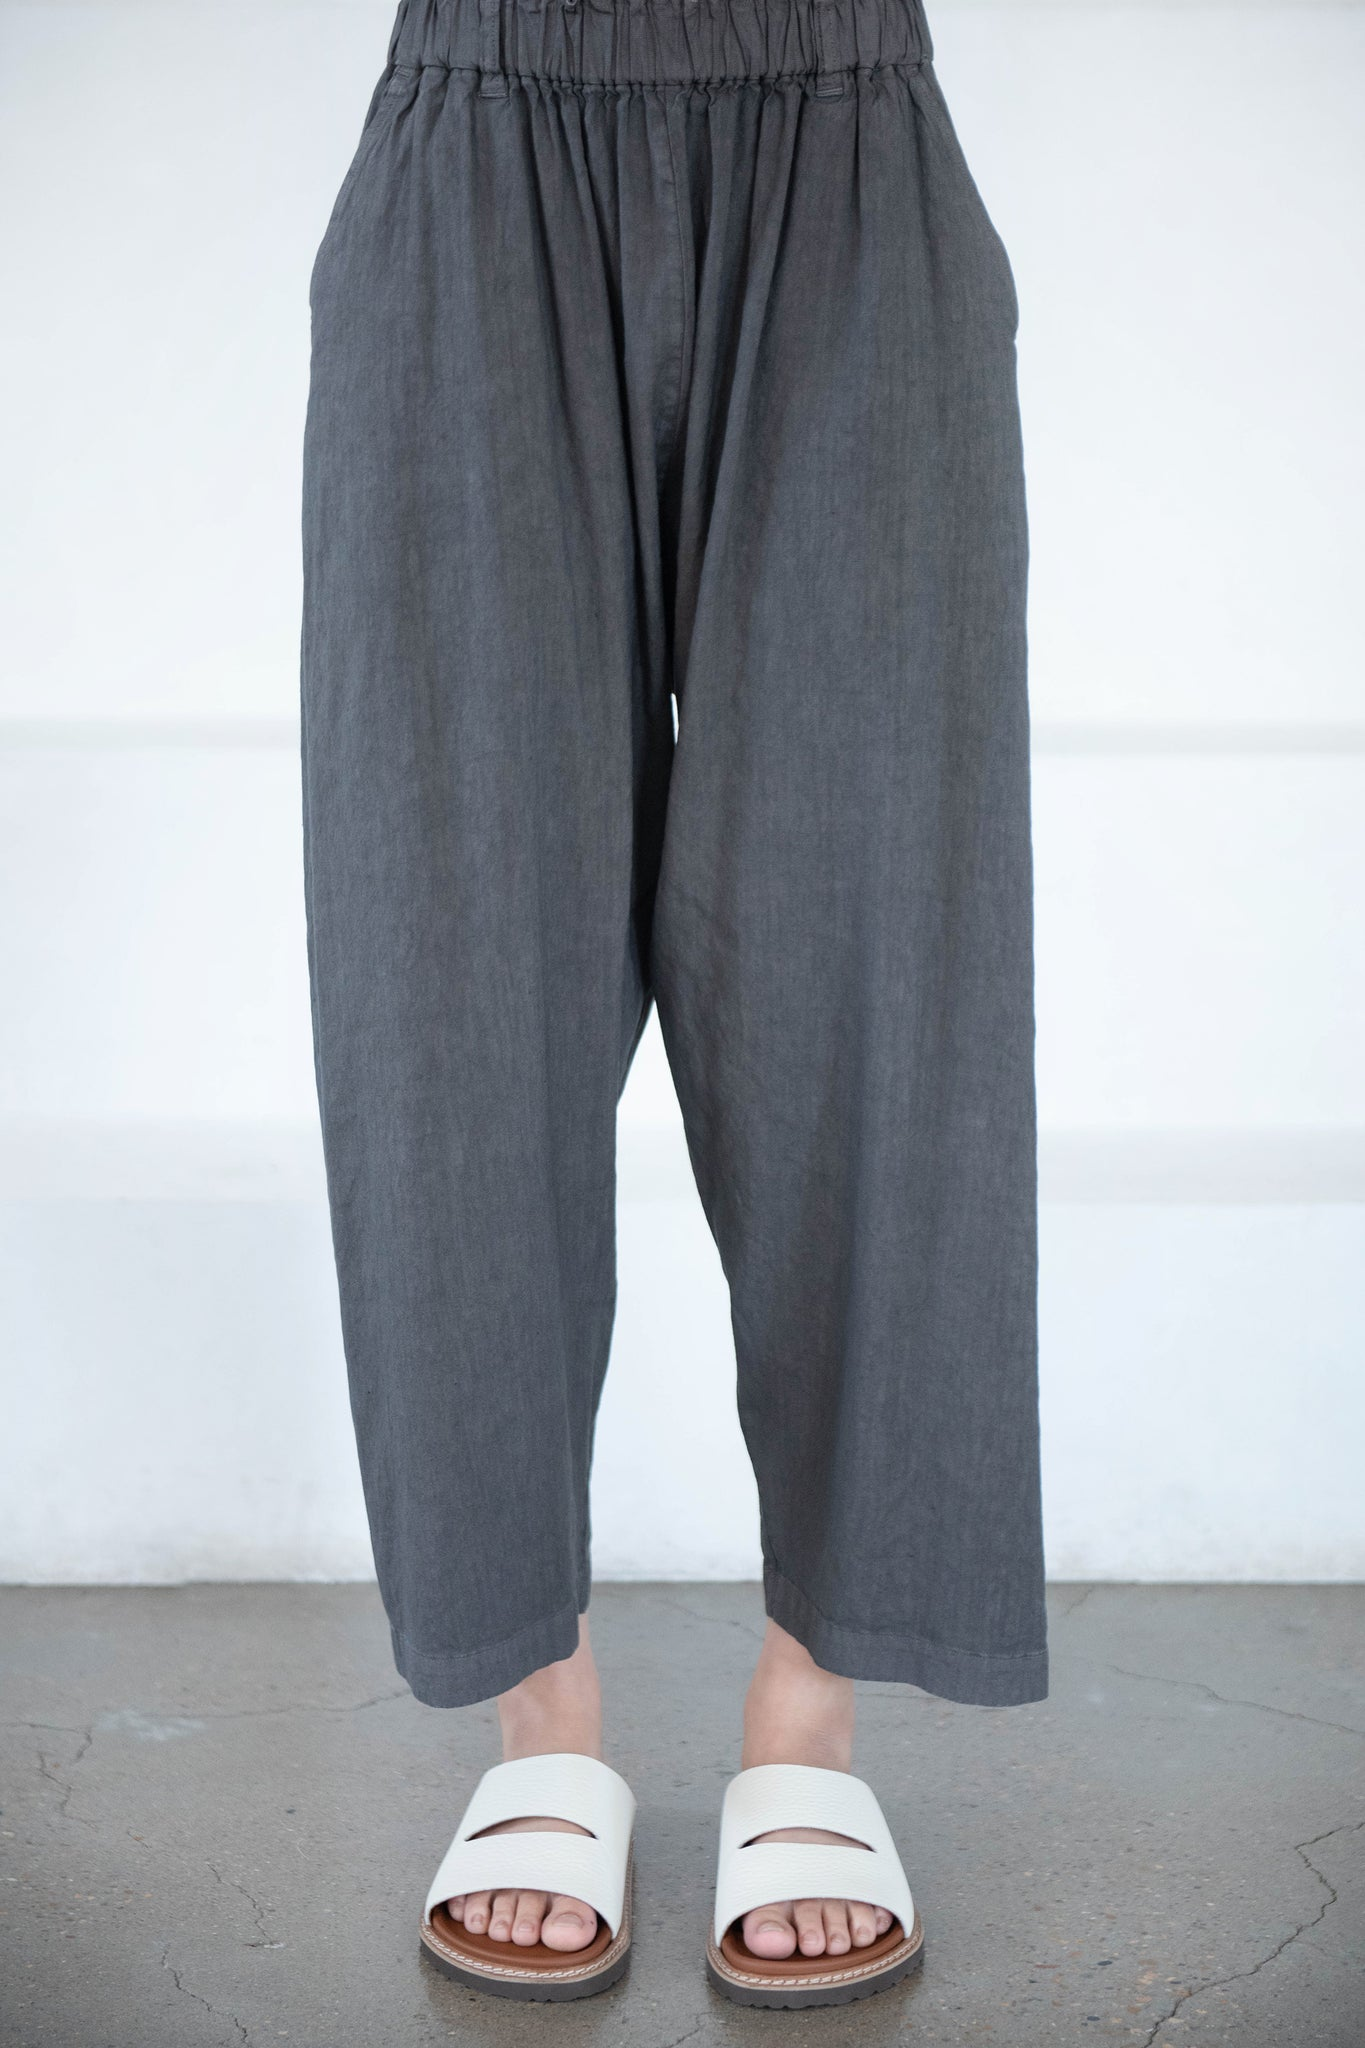 pas de calais - pants, gray